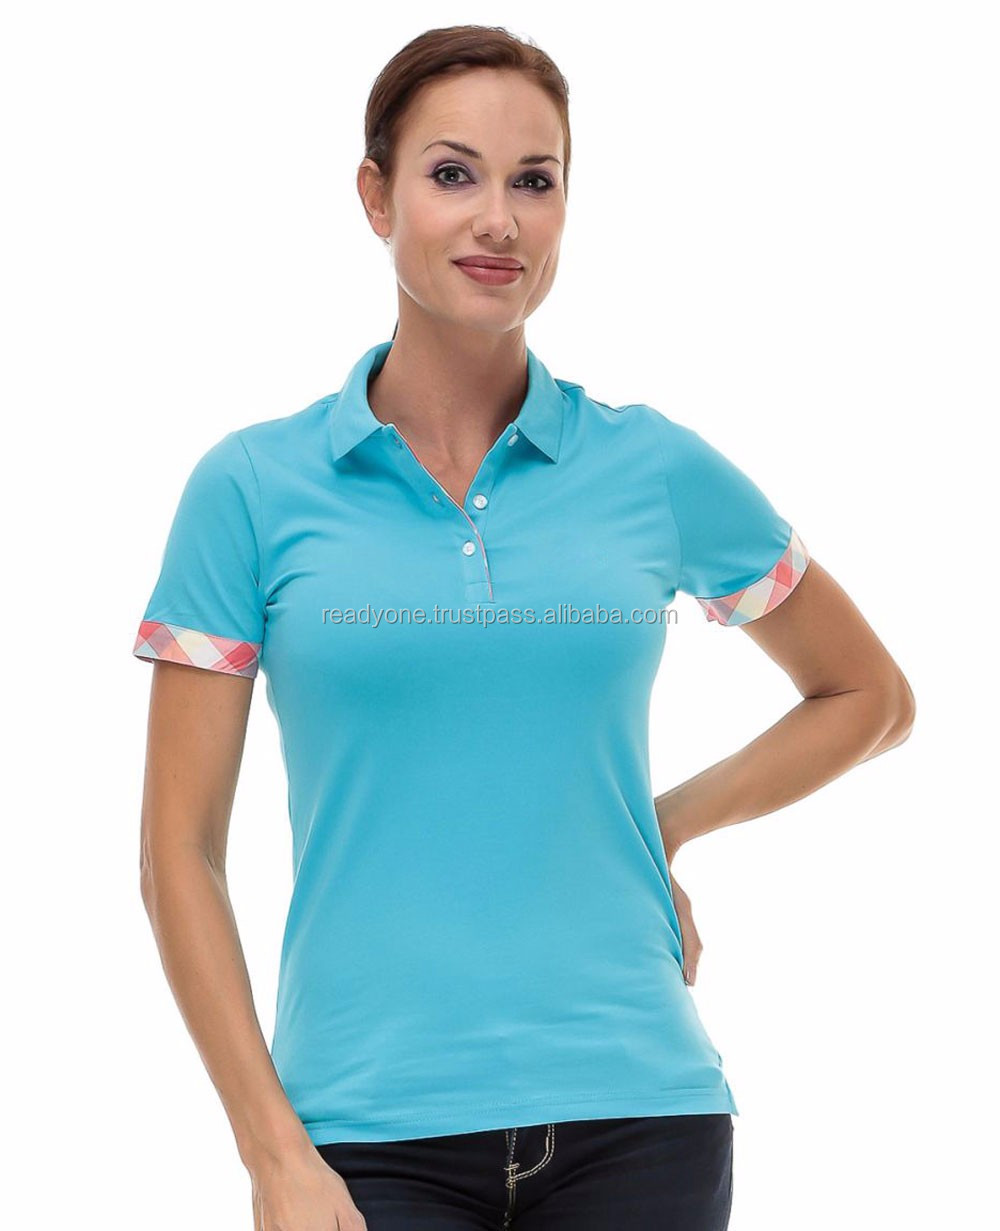 Womens ladies Dri Fit Polo Shirt Made In - Buy Oem Manufacturers ... f4a373c53